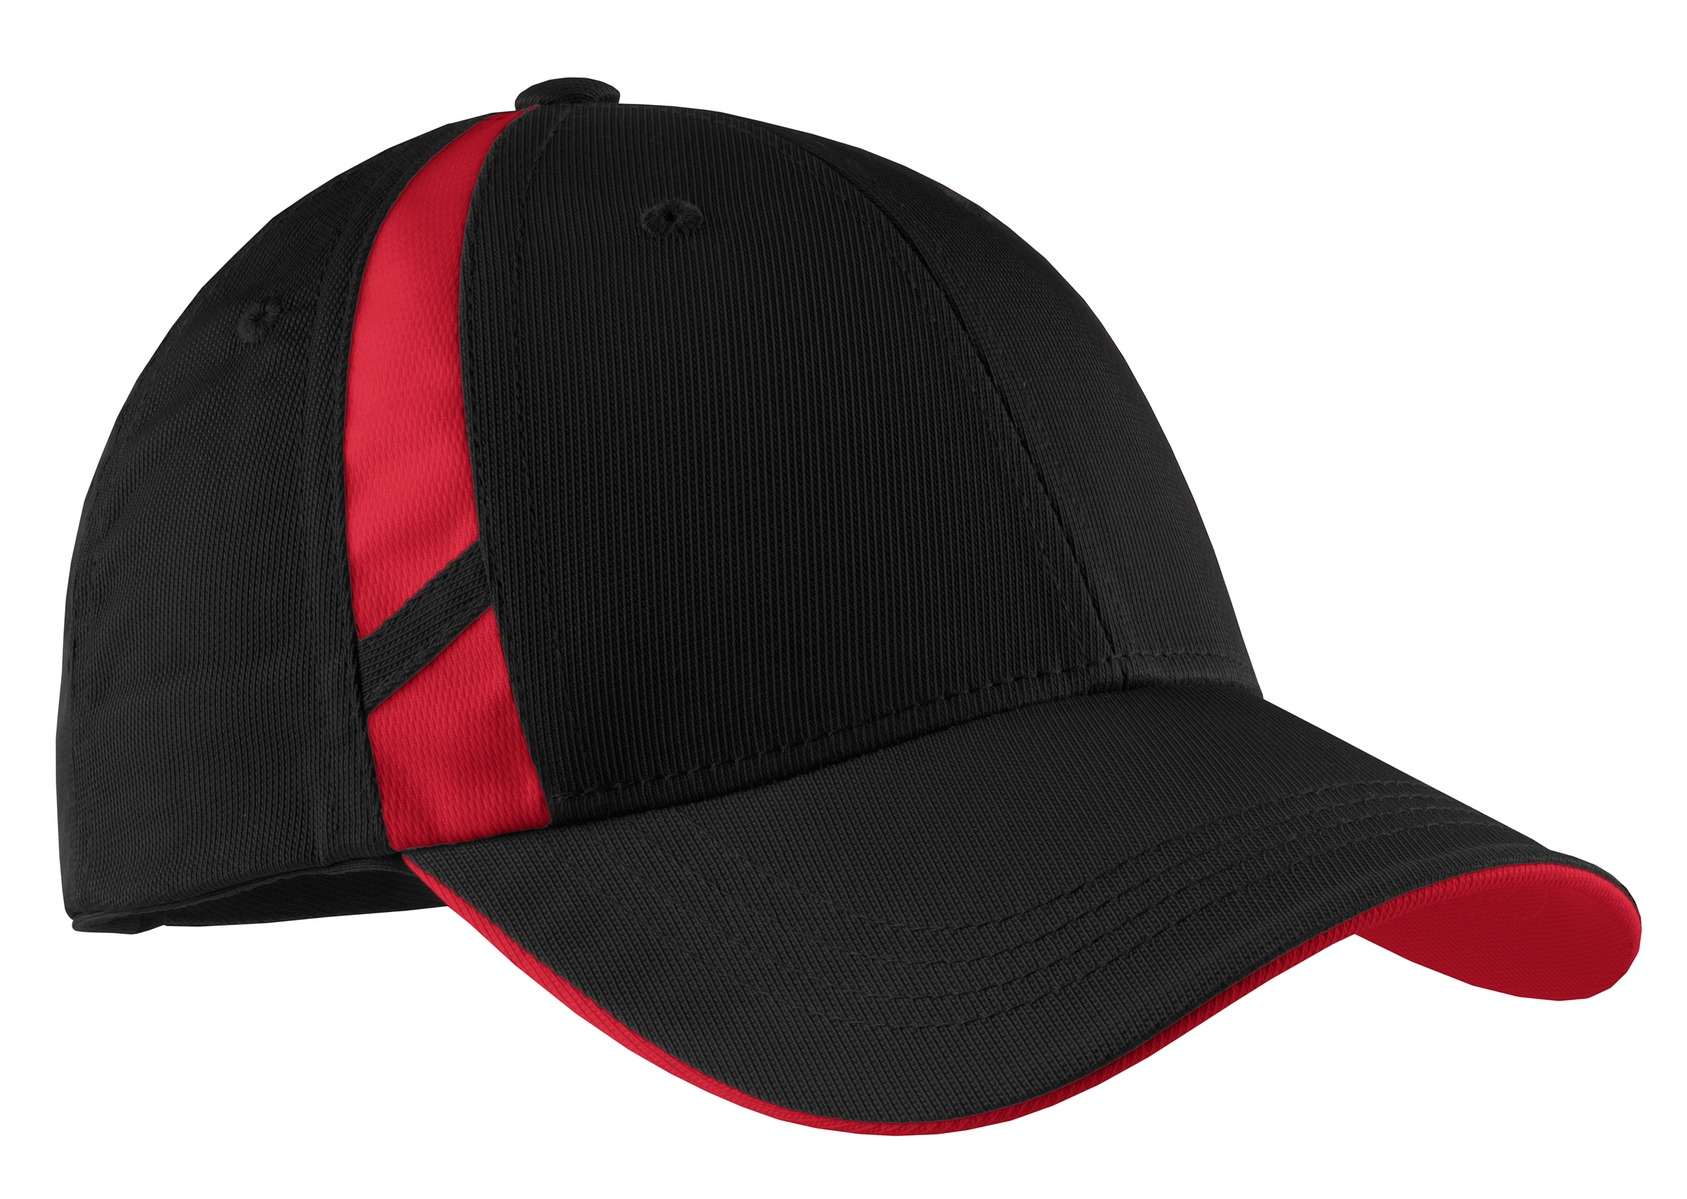 Sport-Tek ®  Dry Zone ®  Mesh Inset Cap. STC12 - Black/ True Red